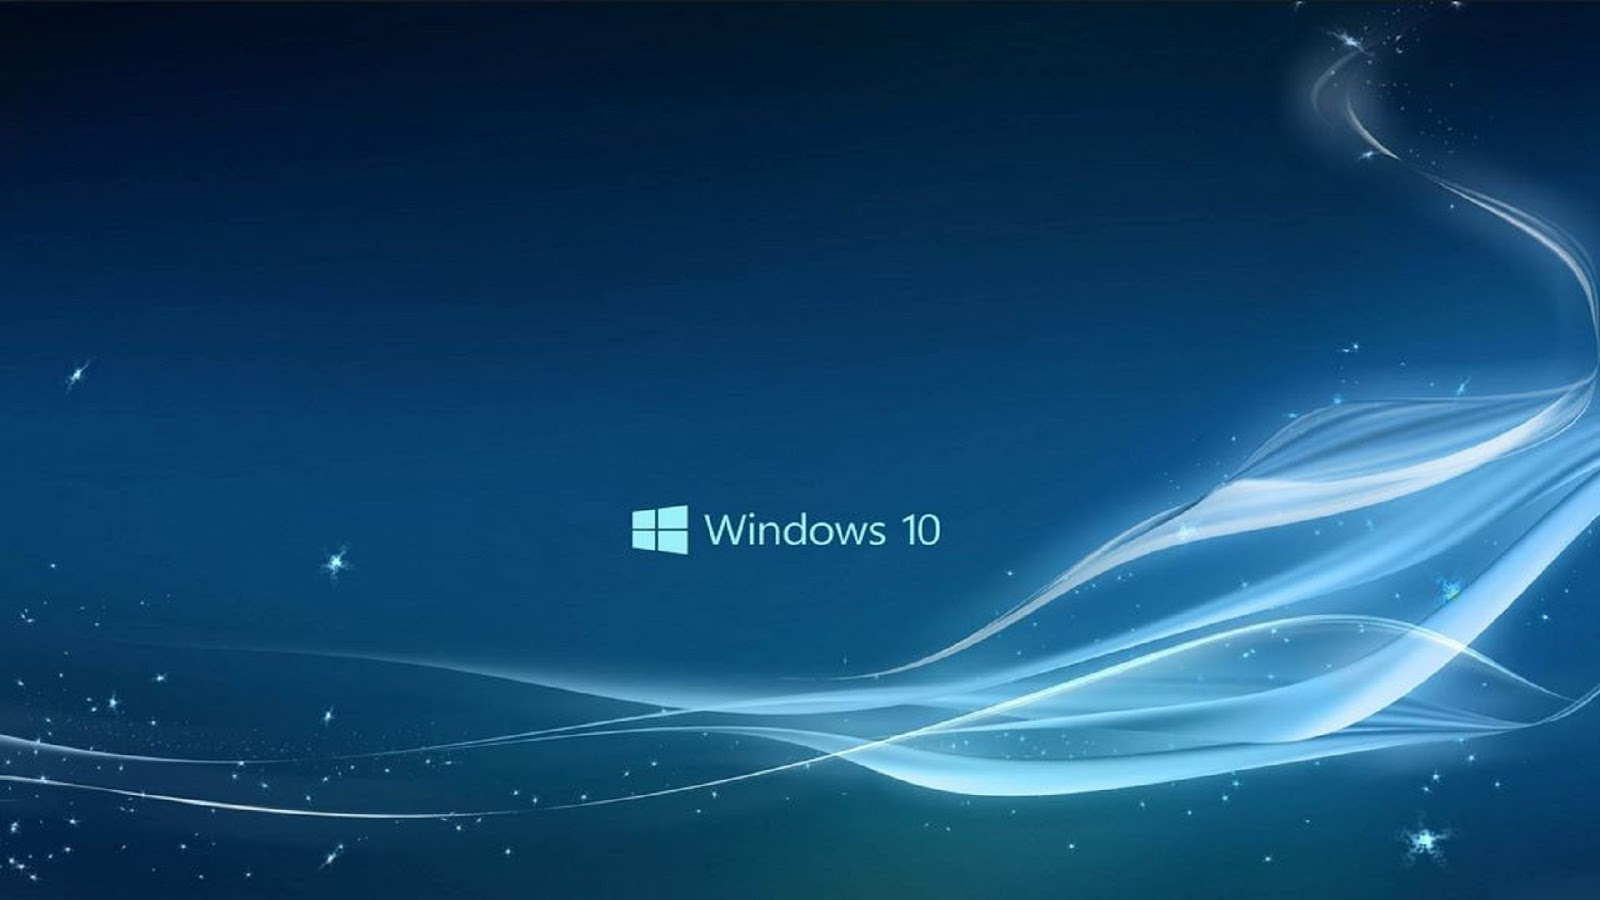 Windows10 Top10 Theme: Windows 10 Top 10 Theme 01